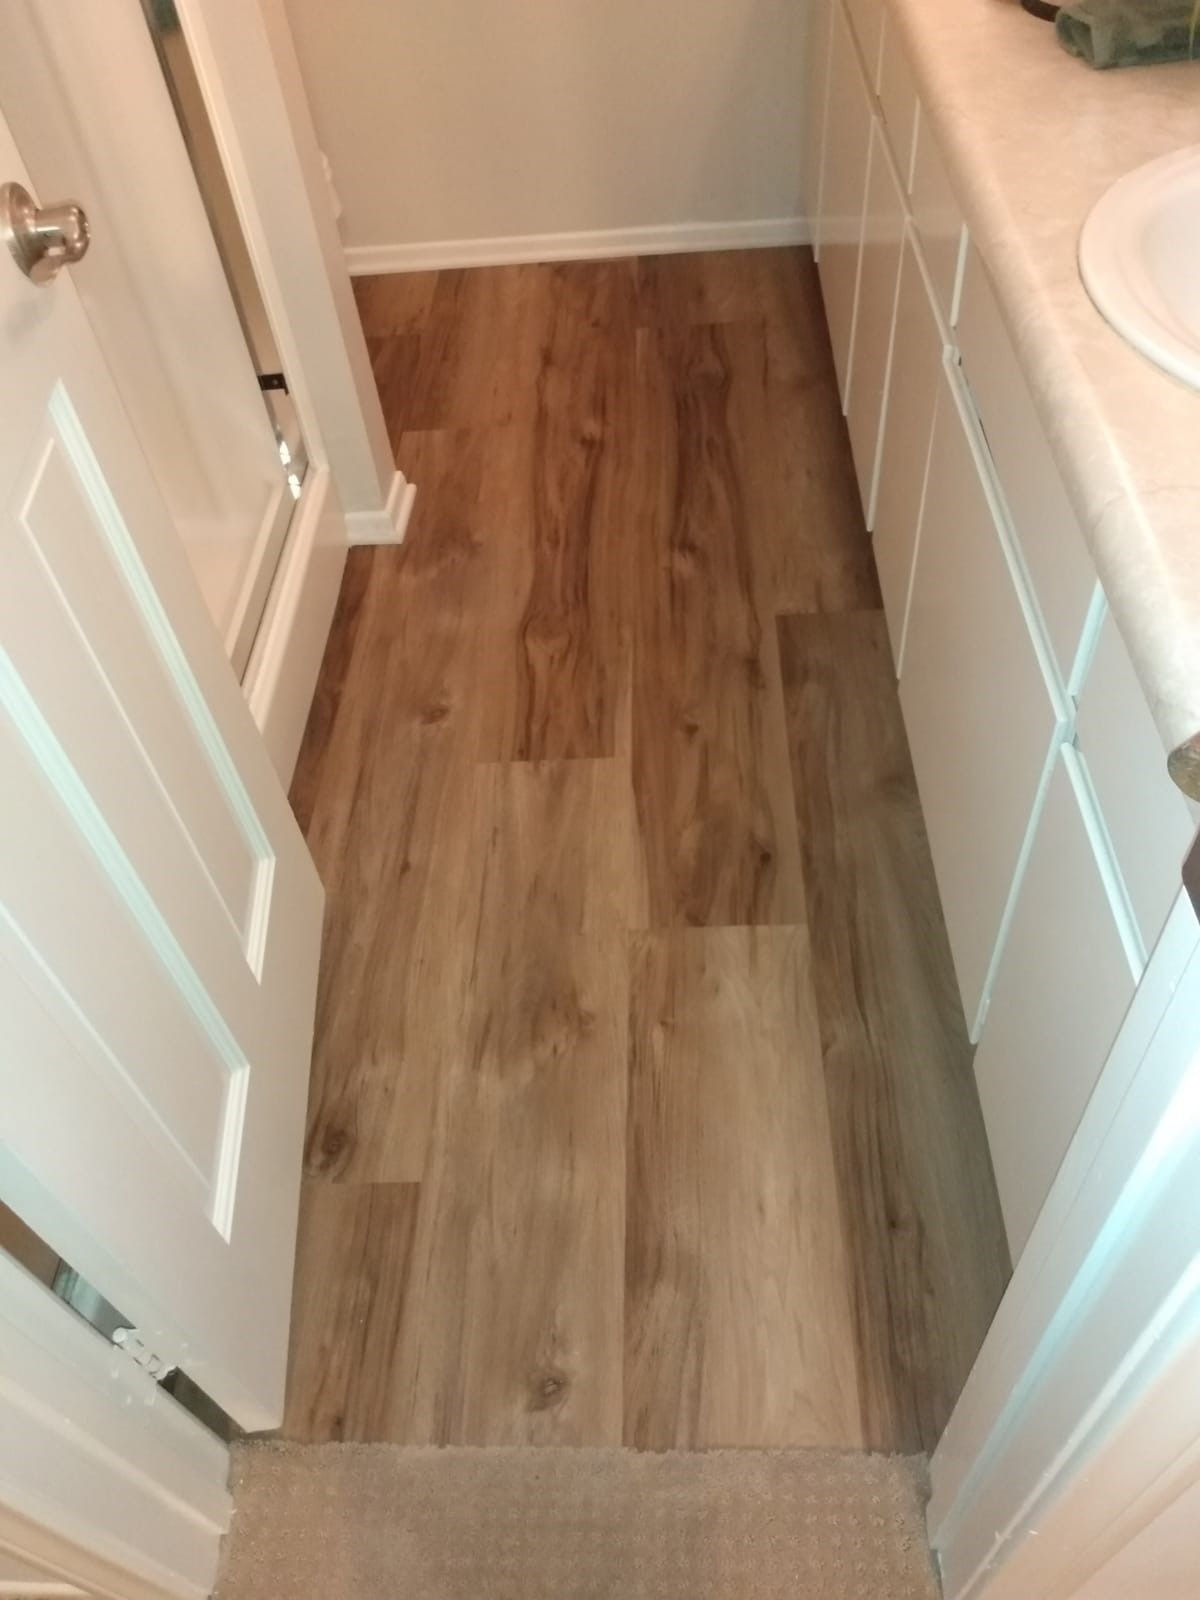 100 Waterproof Flooring In 2020 Bathroom Remodel Master Flooring Waterproof Flooring